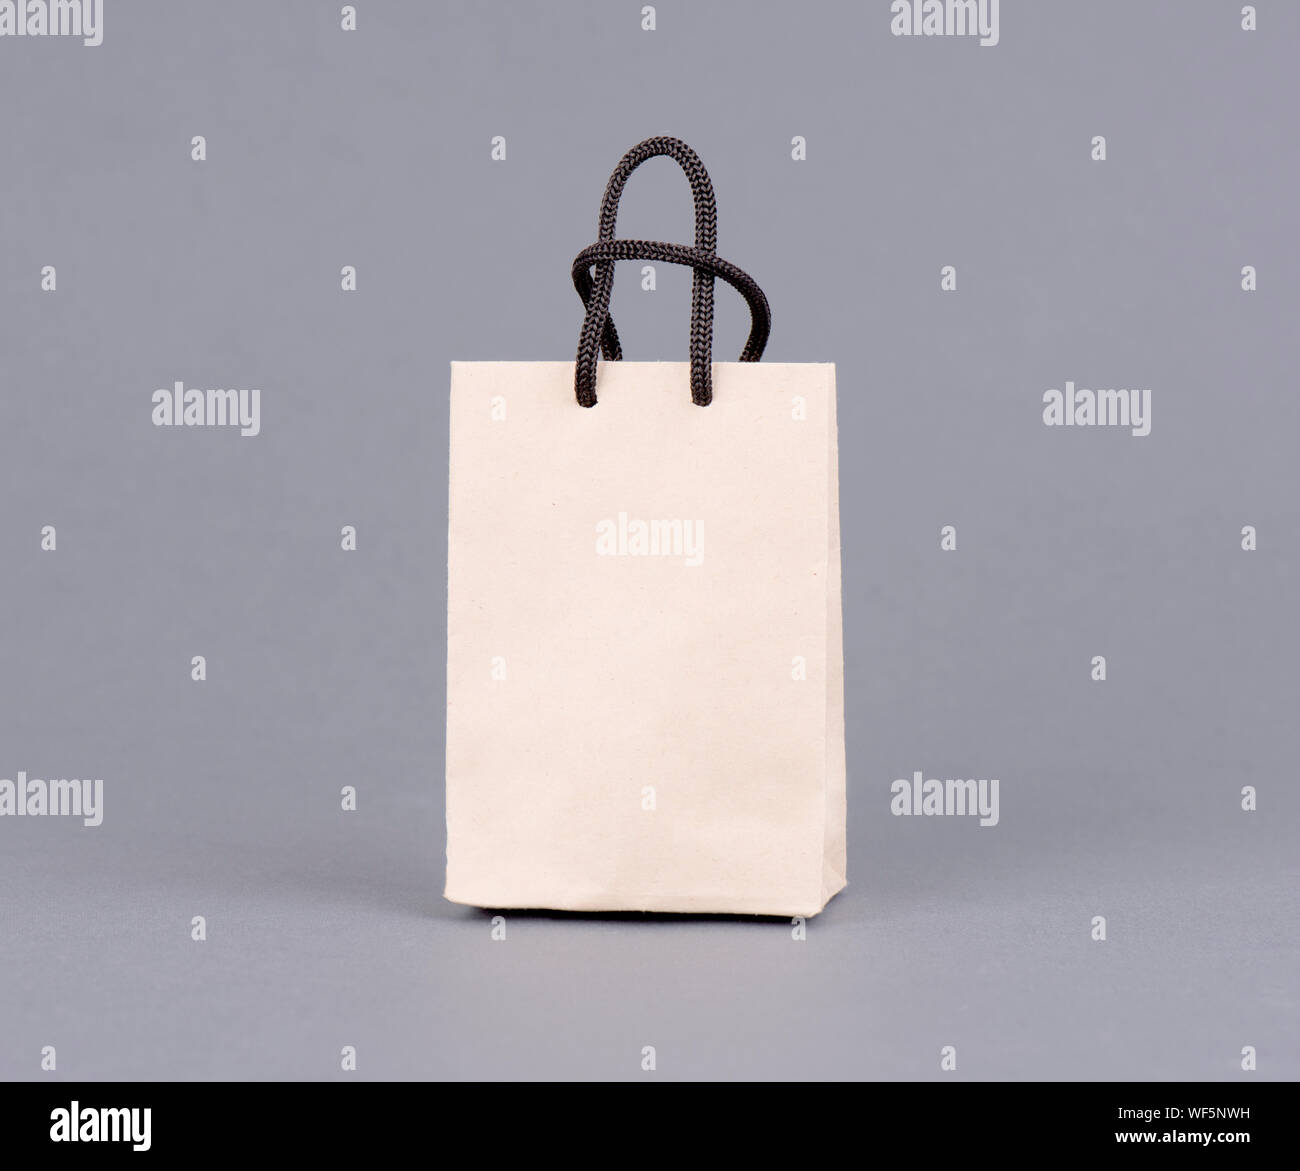 Food Paper Bag Design High Resolution Stock Photography And Images Alamy